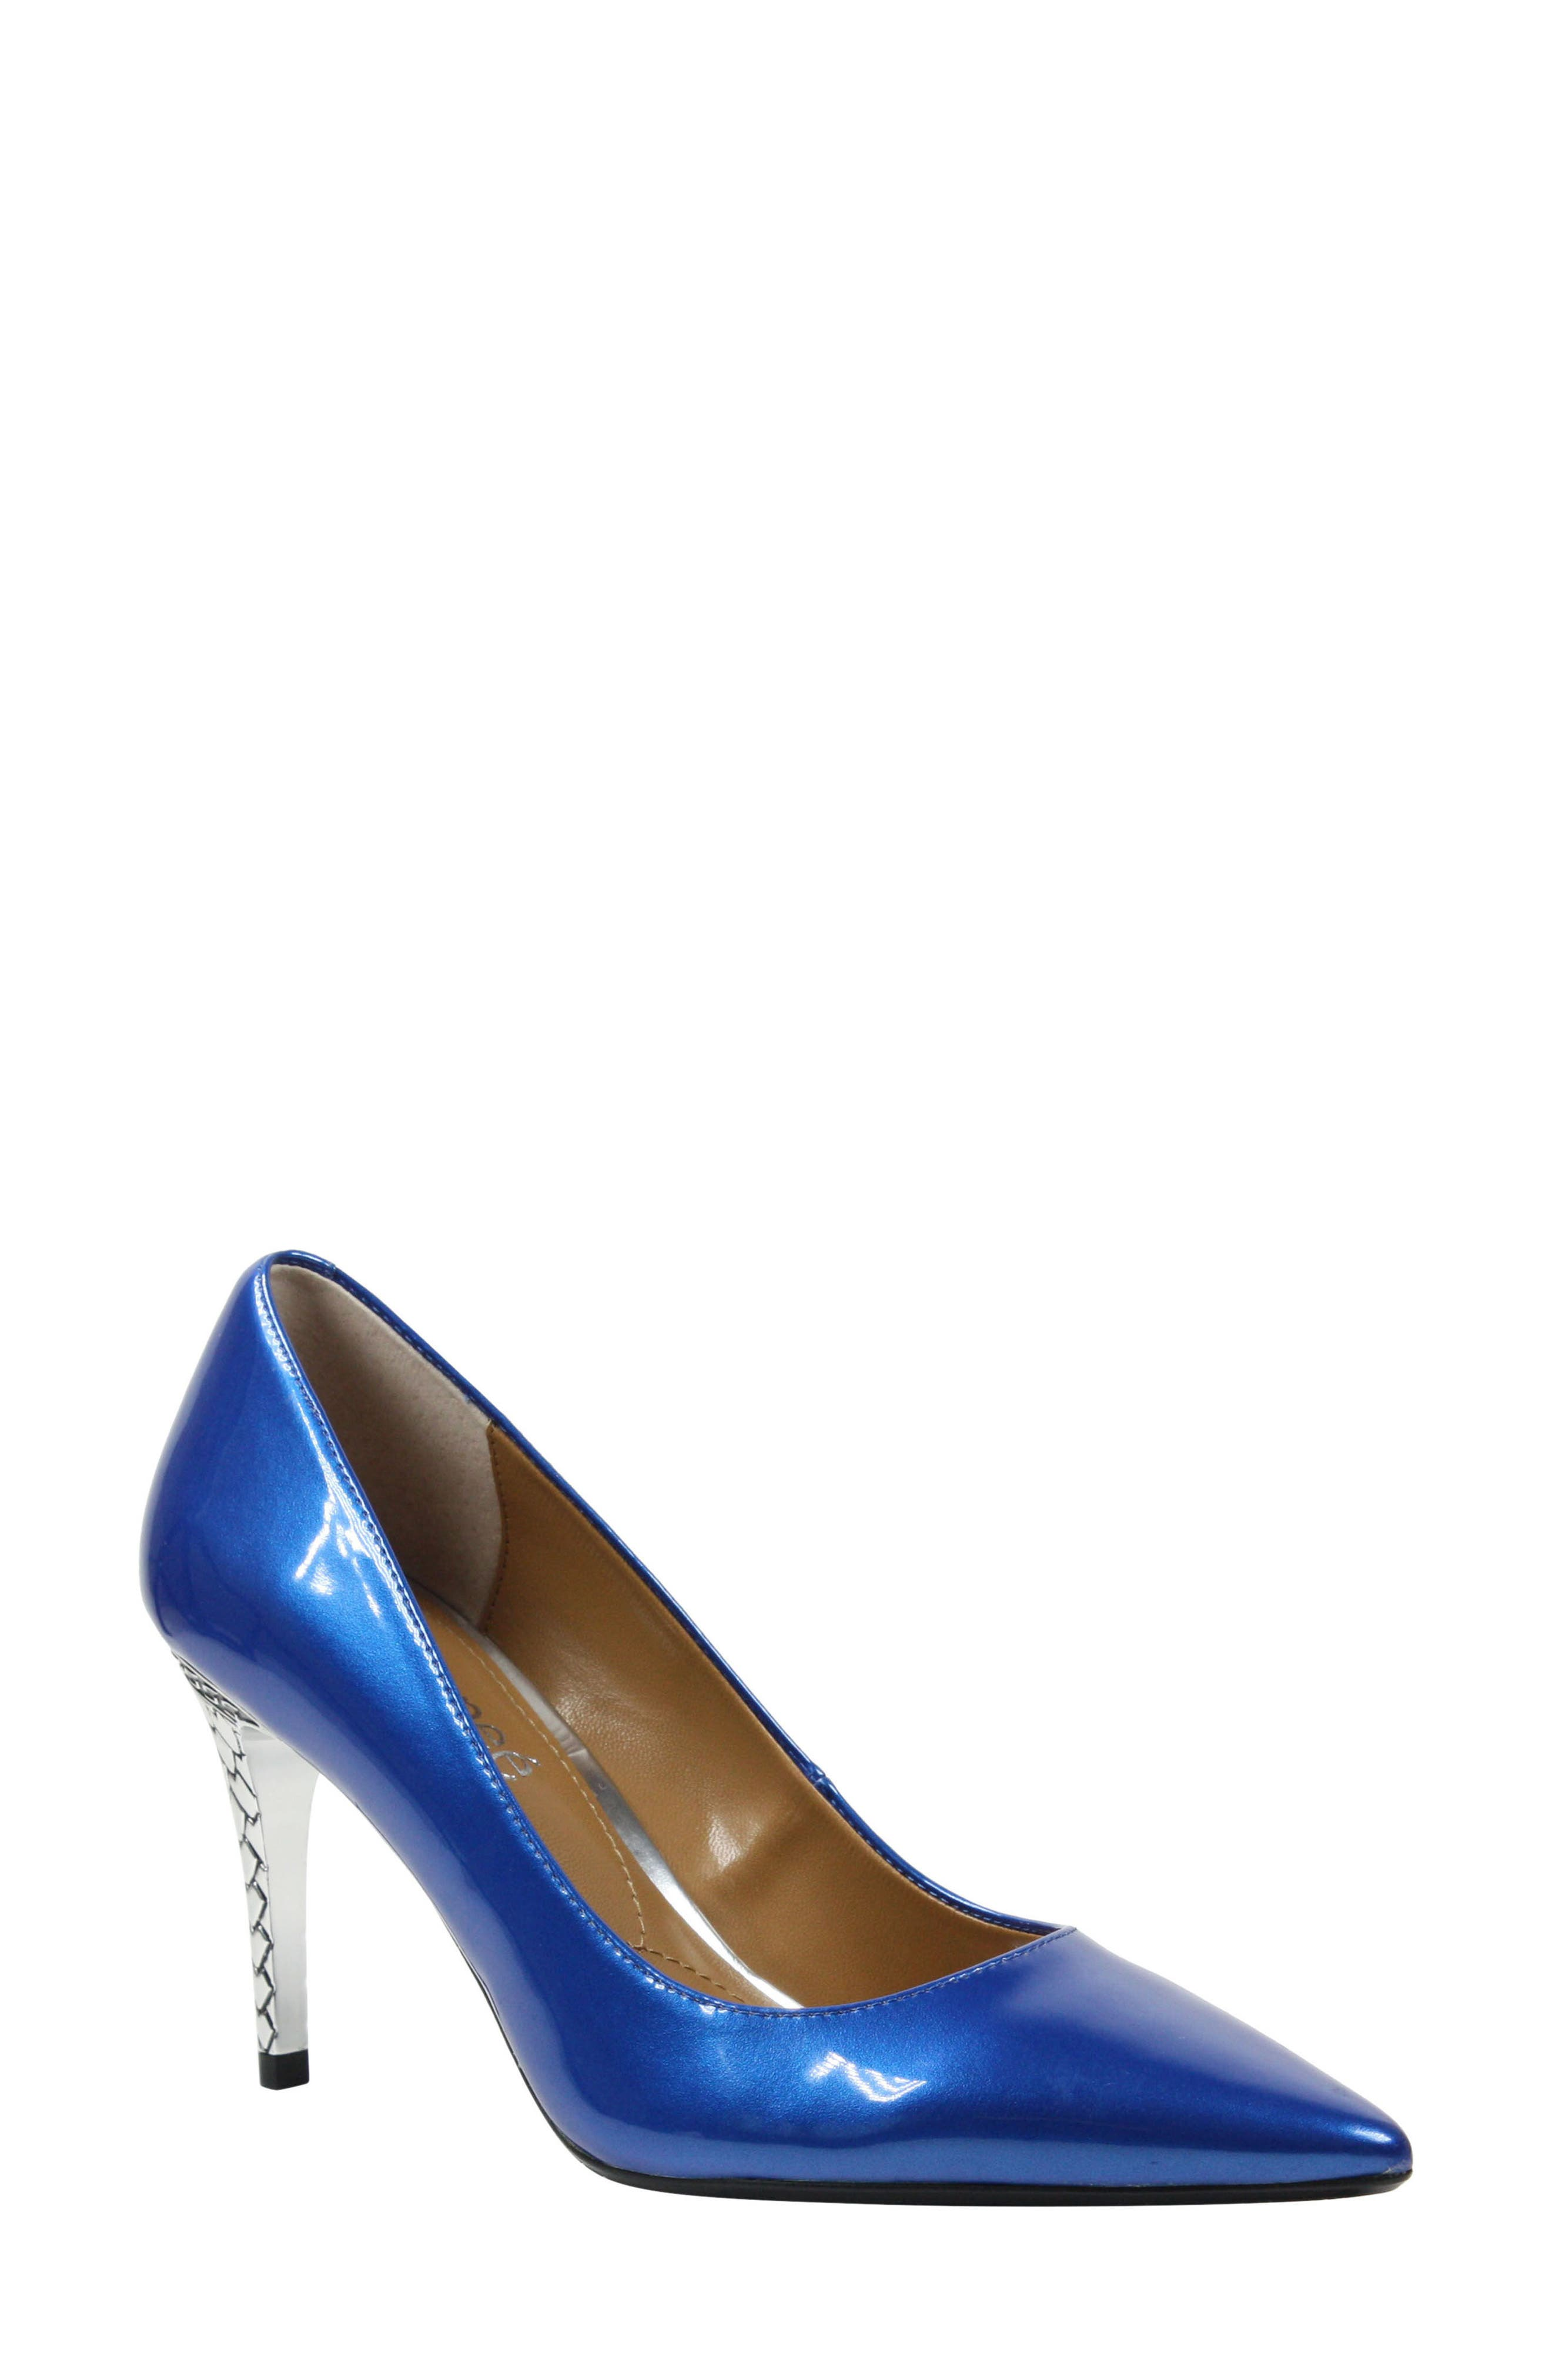 'Maressa' Pointy Toe Pump,                         Main,                         color, Blue Patent